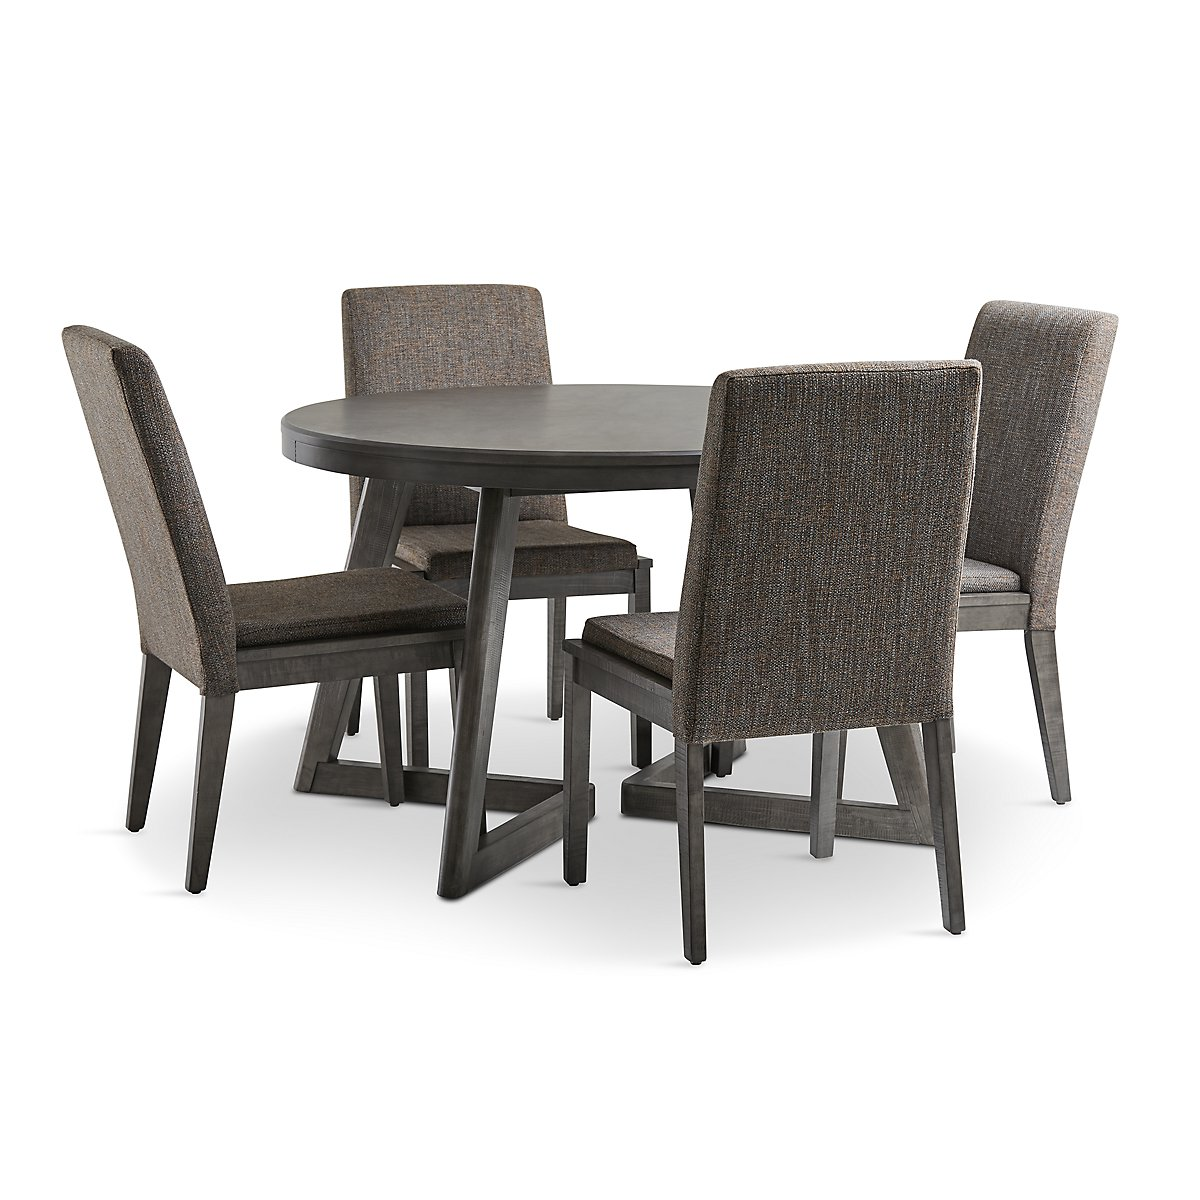 Bayberry Dark Tone Round Table 4 Chairs: Cross Dark Tone Wood Round Table & 4 Upholstered Chairs